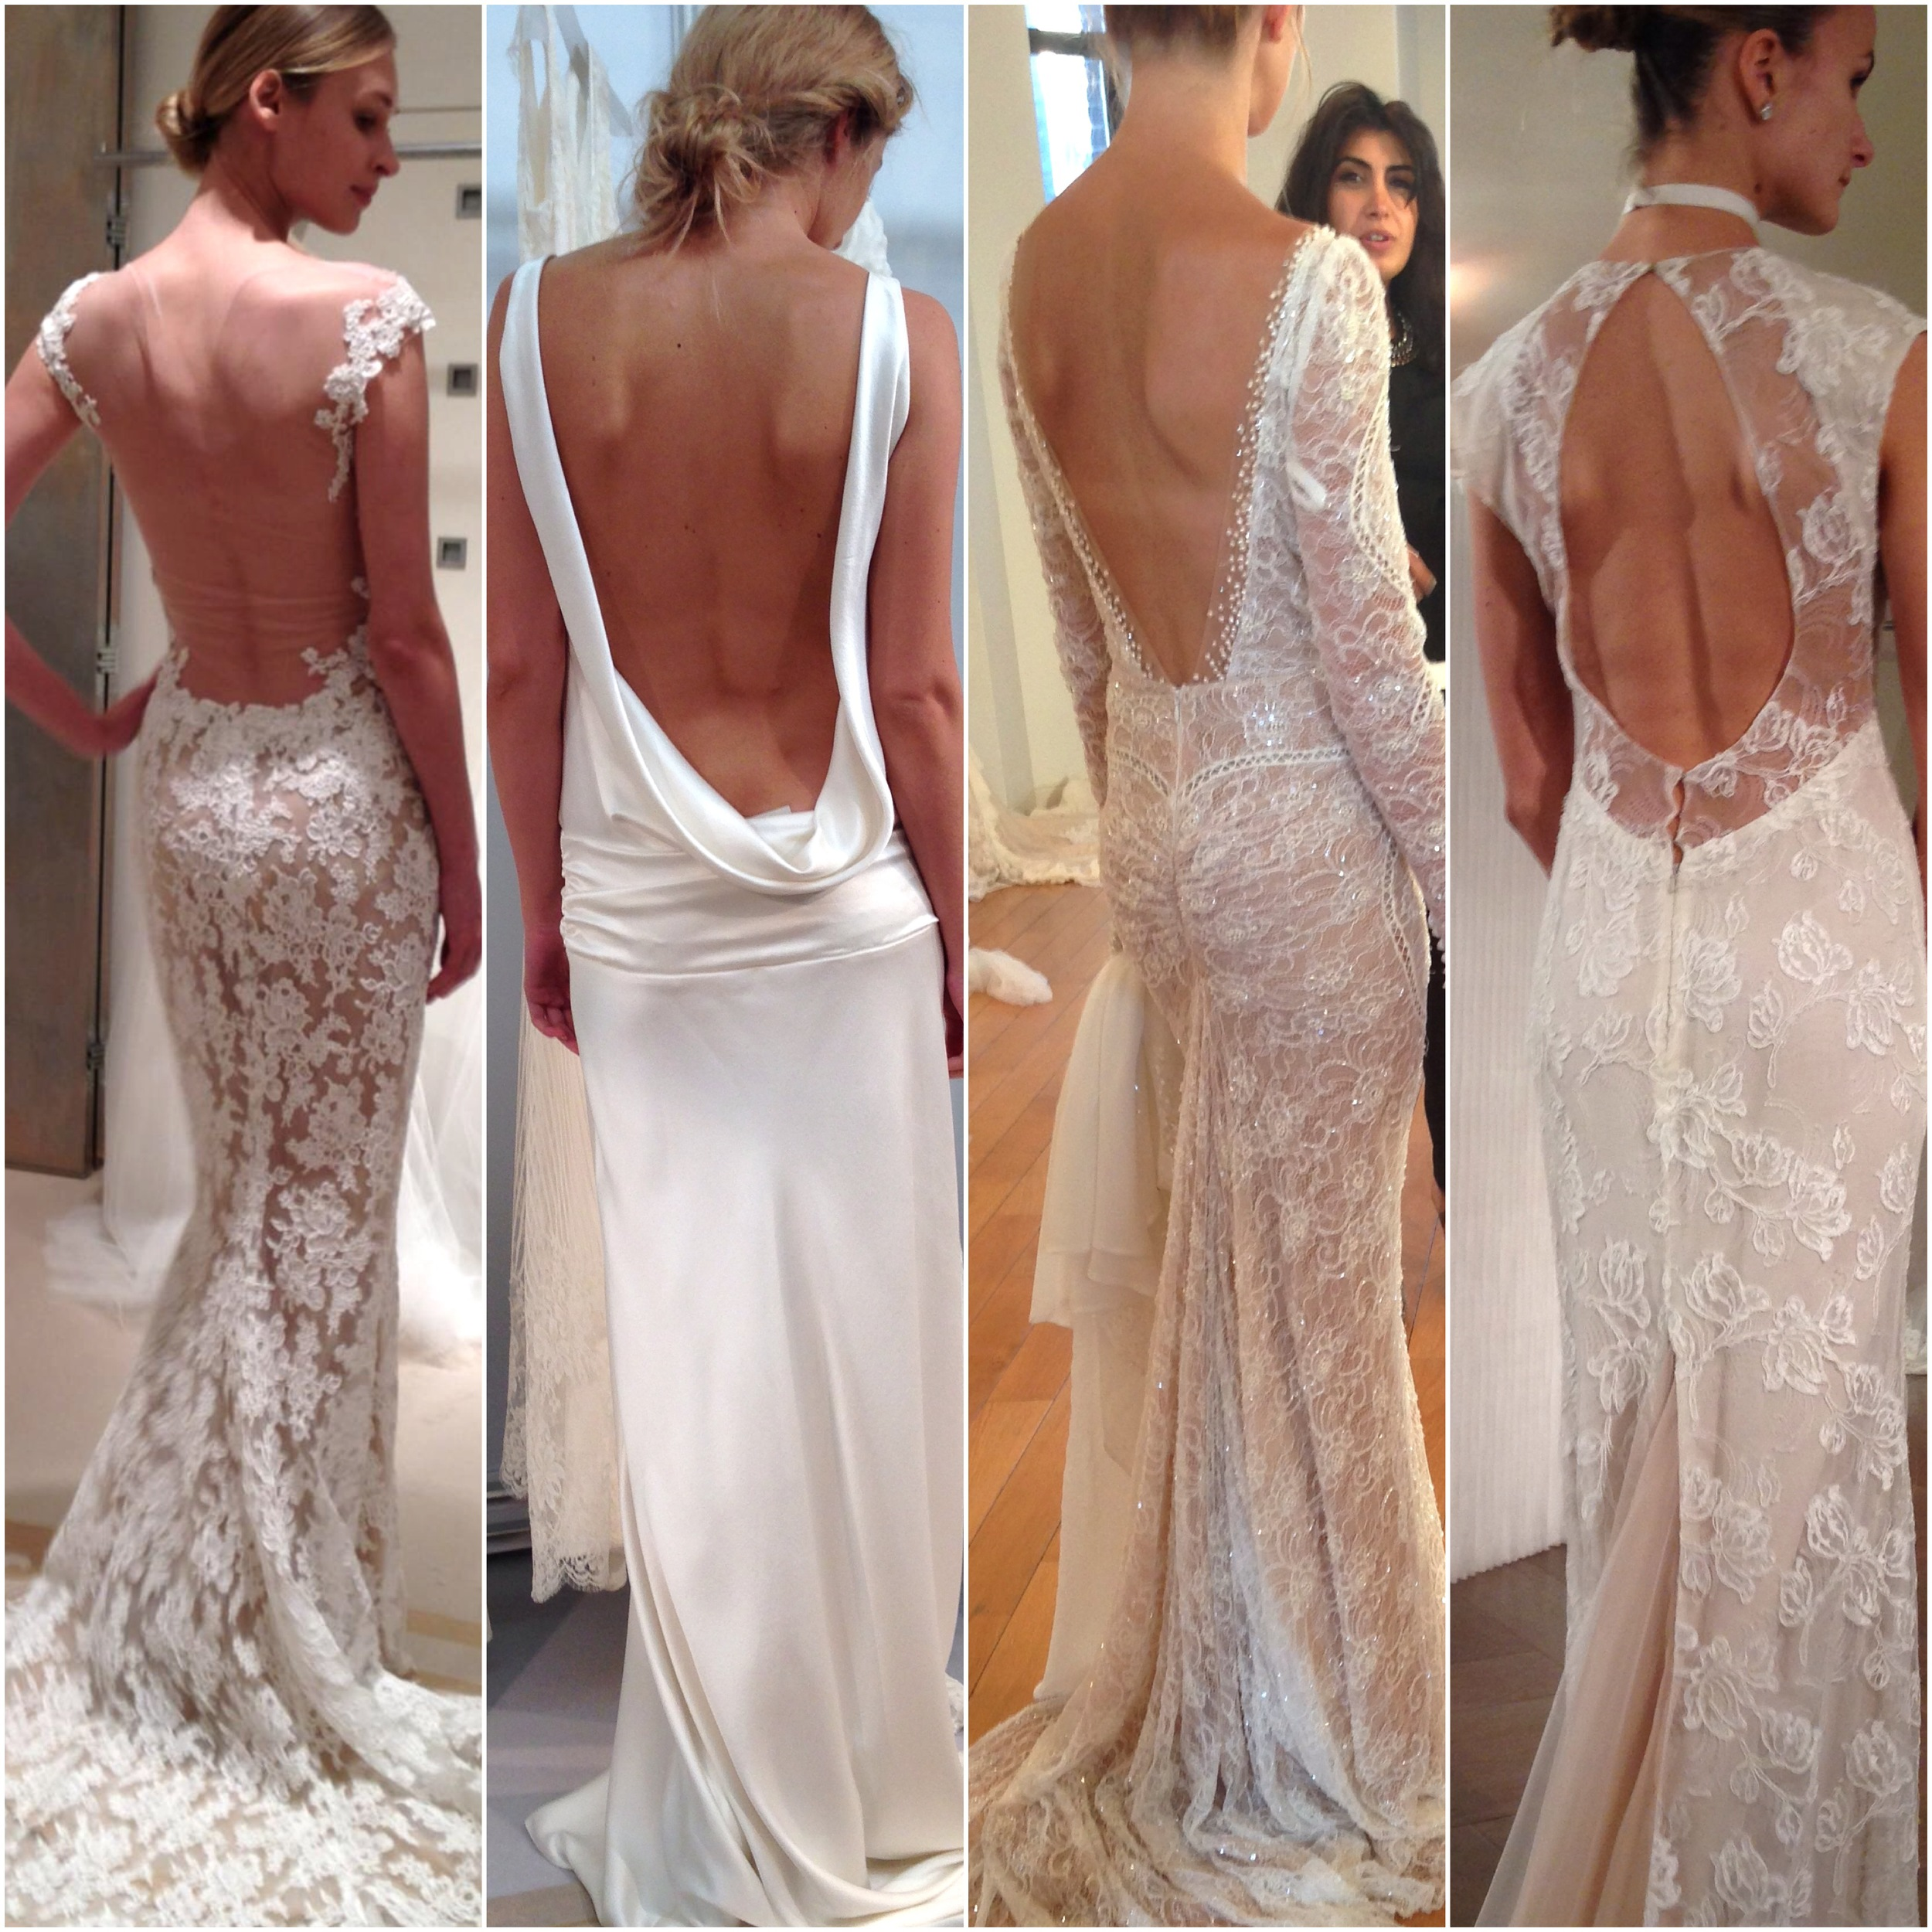 Left to Right: Reem Acra, Charlie Brear, Inbal Dror, Rivini.